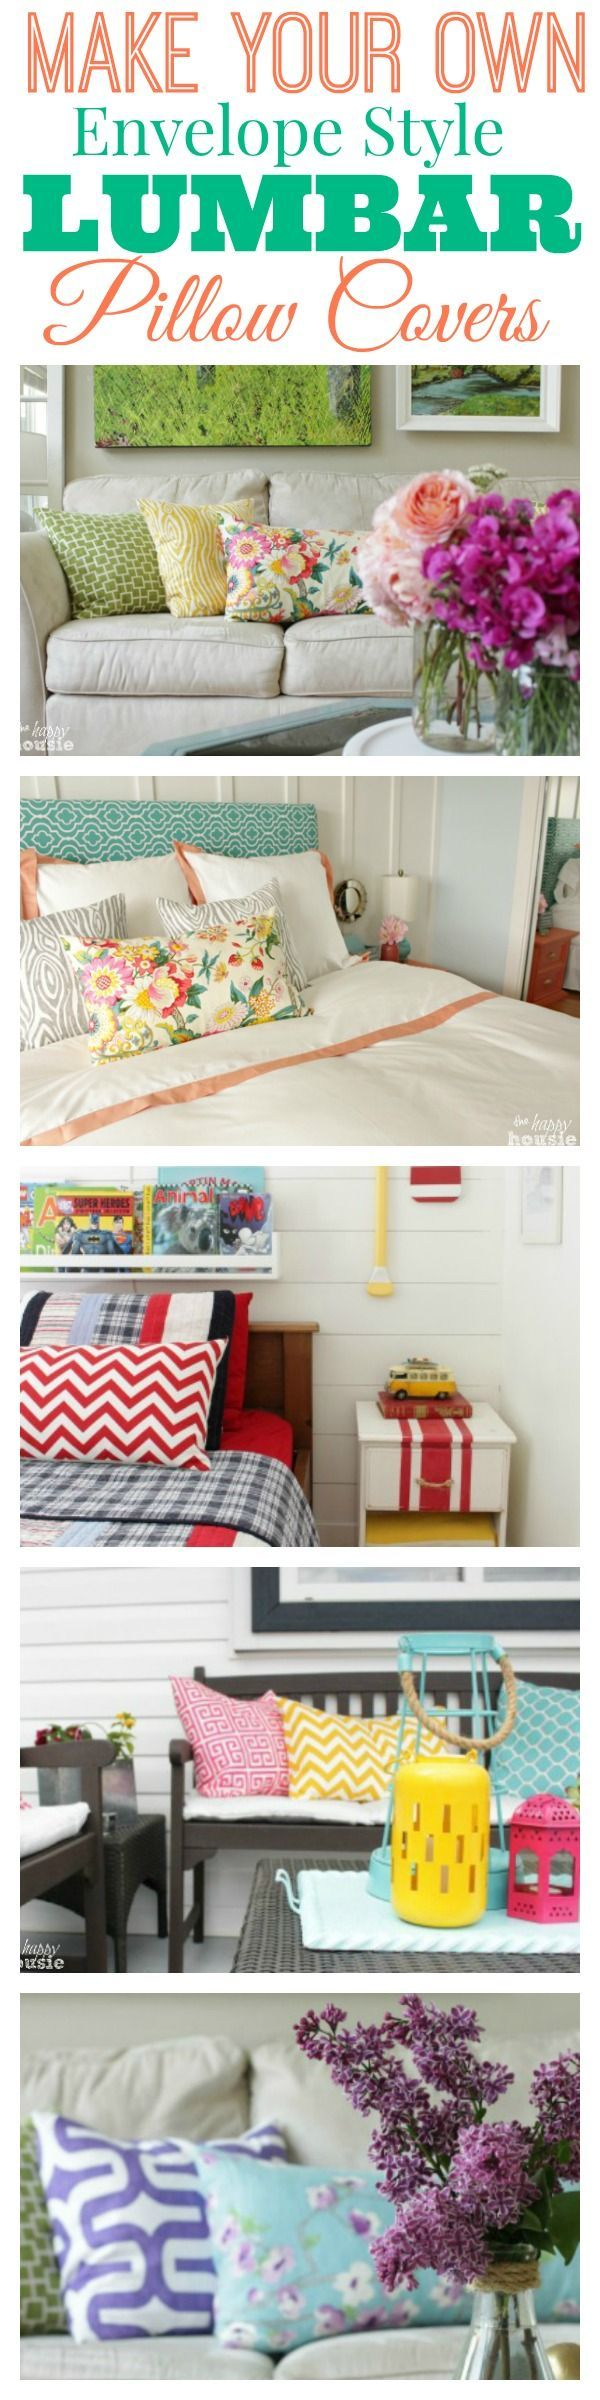 Learn how to make your own DIY Envelope Lumbar Pillows for your home decor! | shop supplies @ JoAnn's